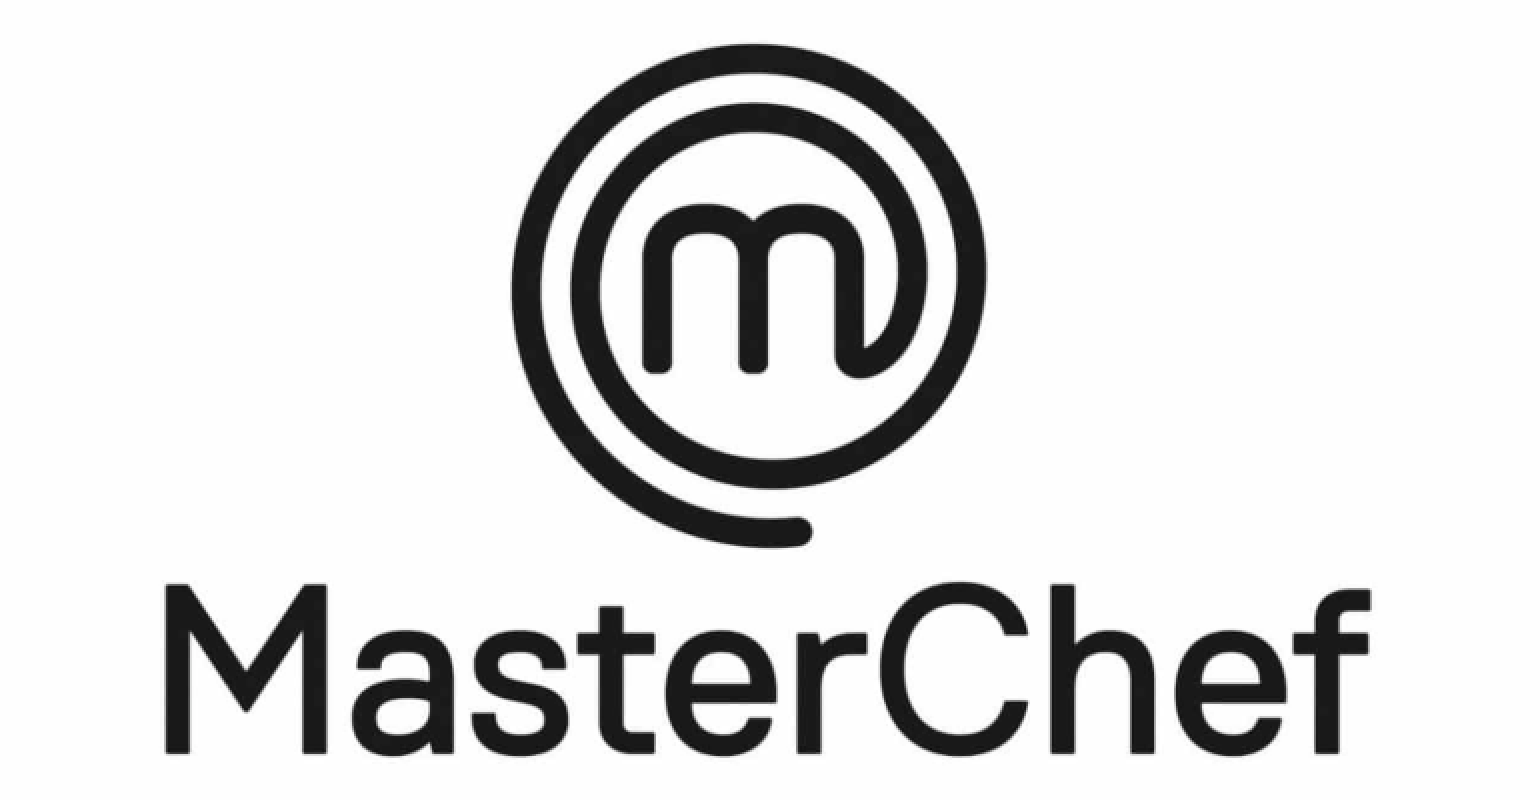 MasterChef - Learn How to Watch on Mobile